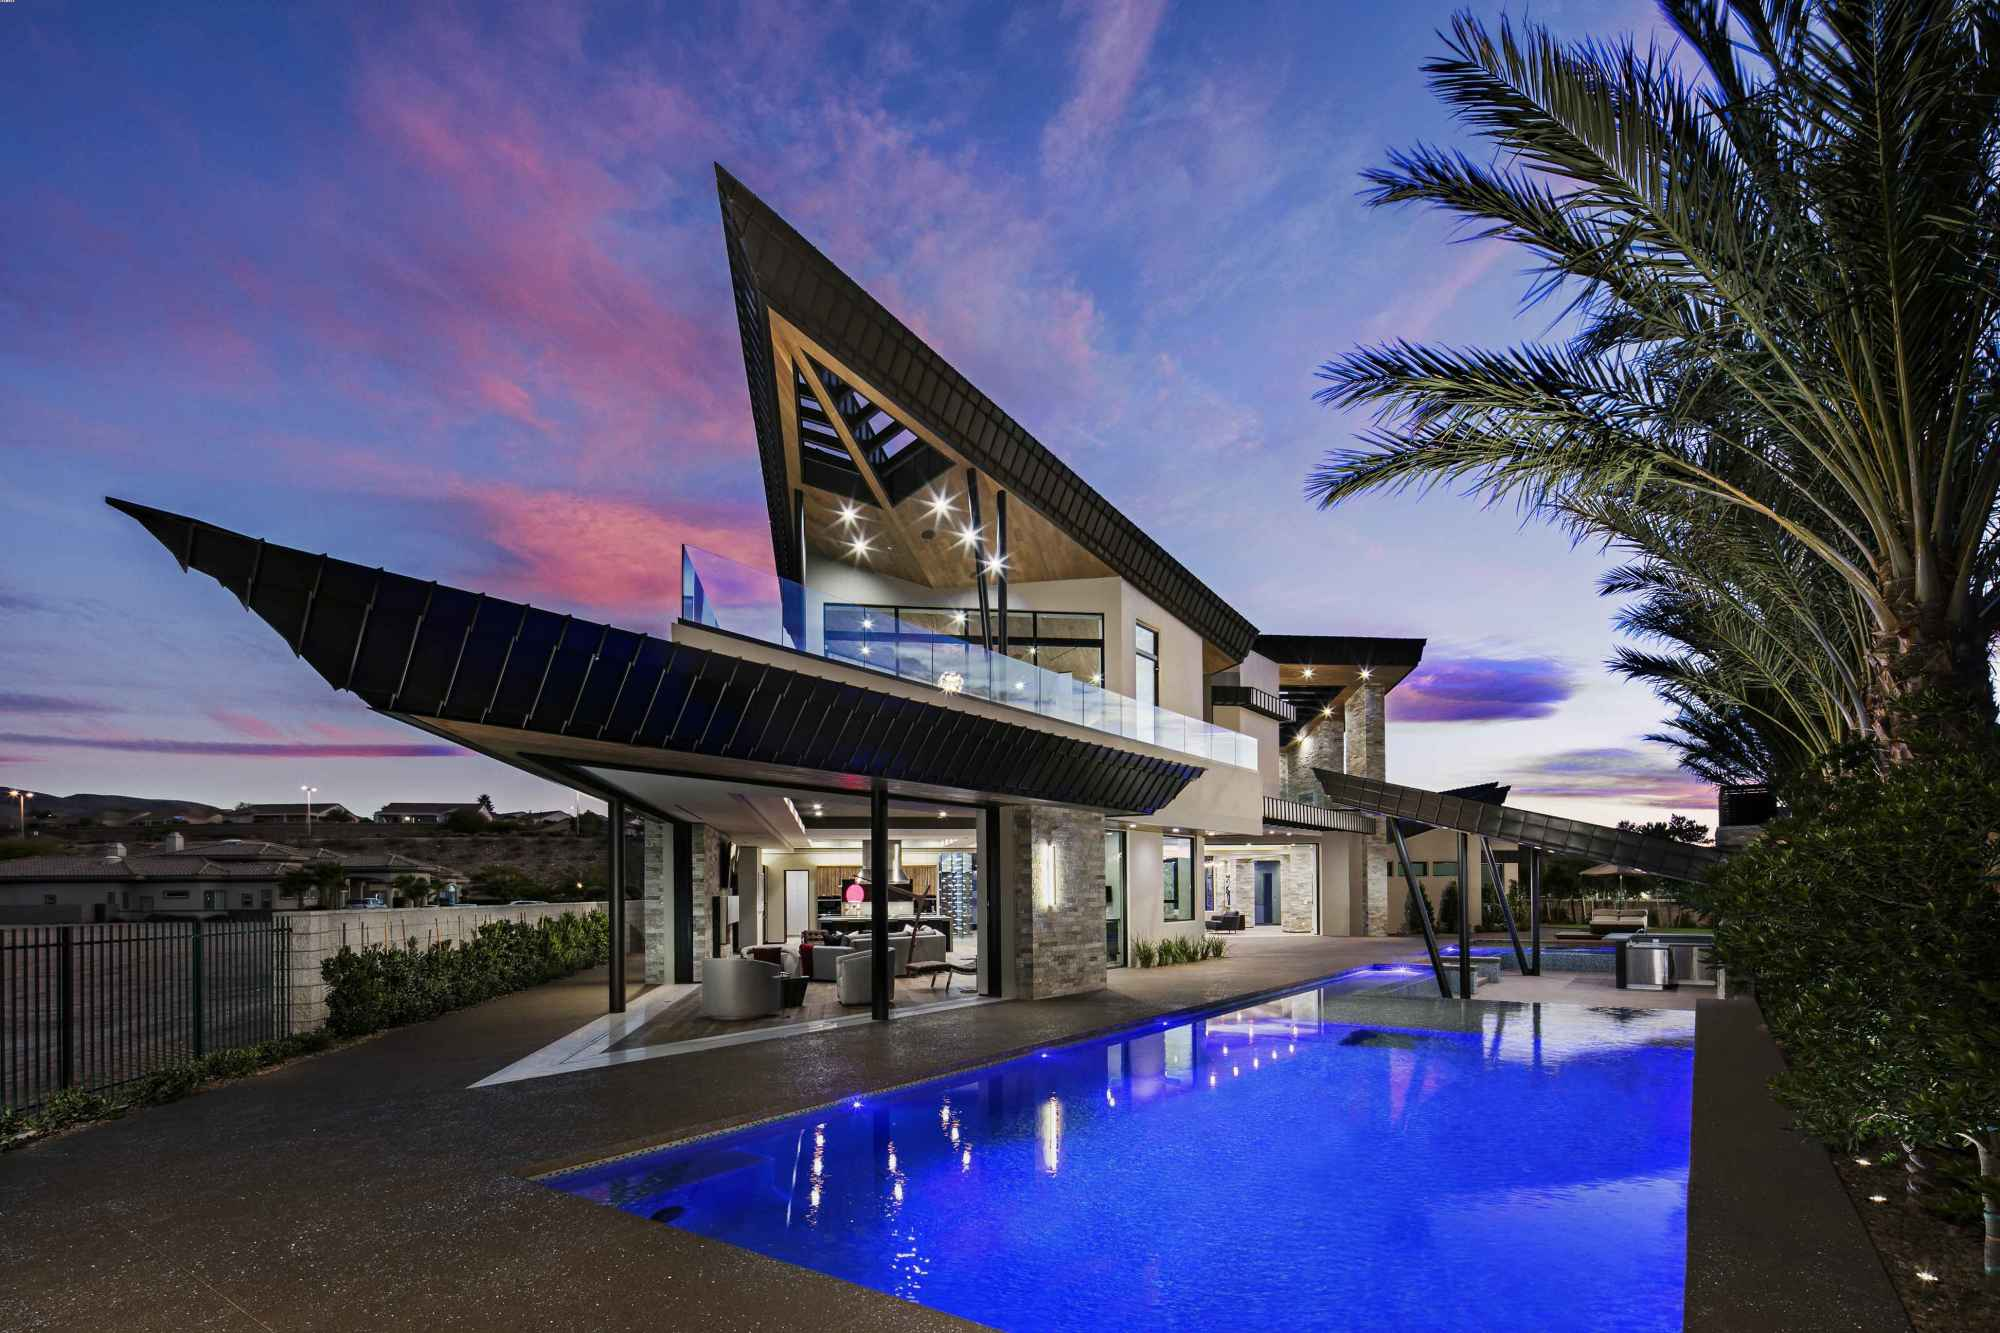 Seven Hills Luxury Home Represents New Las Vegas Aesthetic